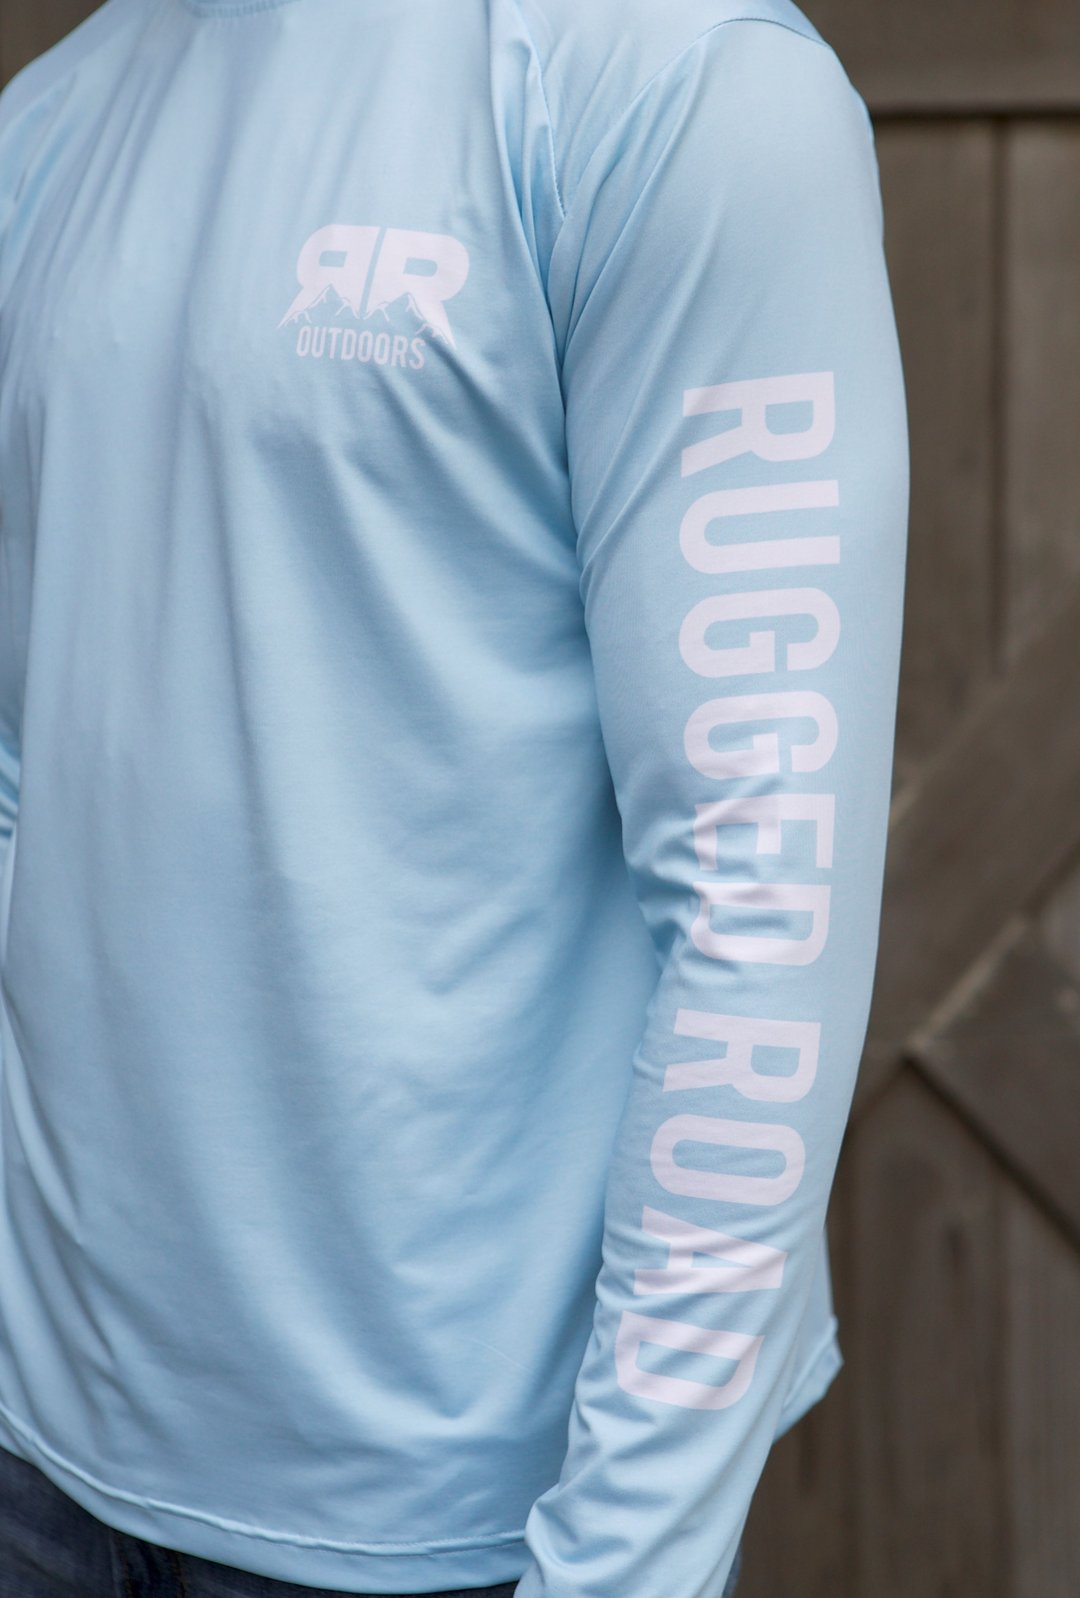 Rugged Road Long Sleeve Performance Shirt Aqua Sleeve